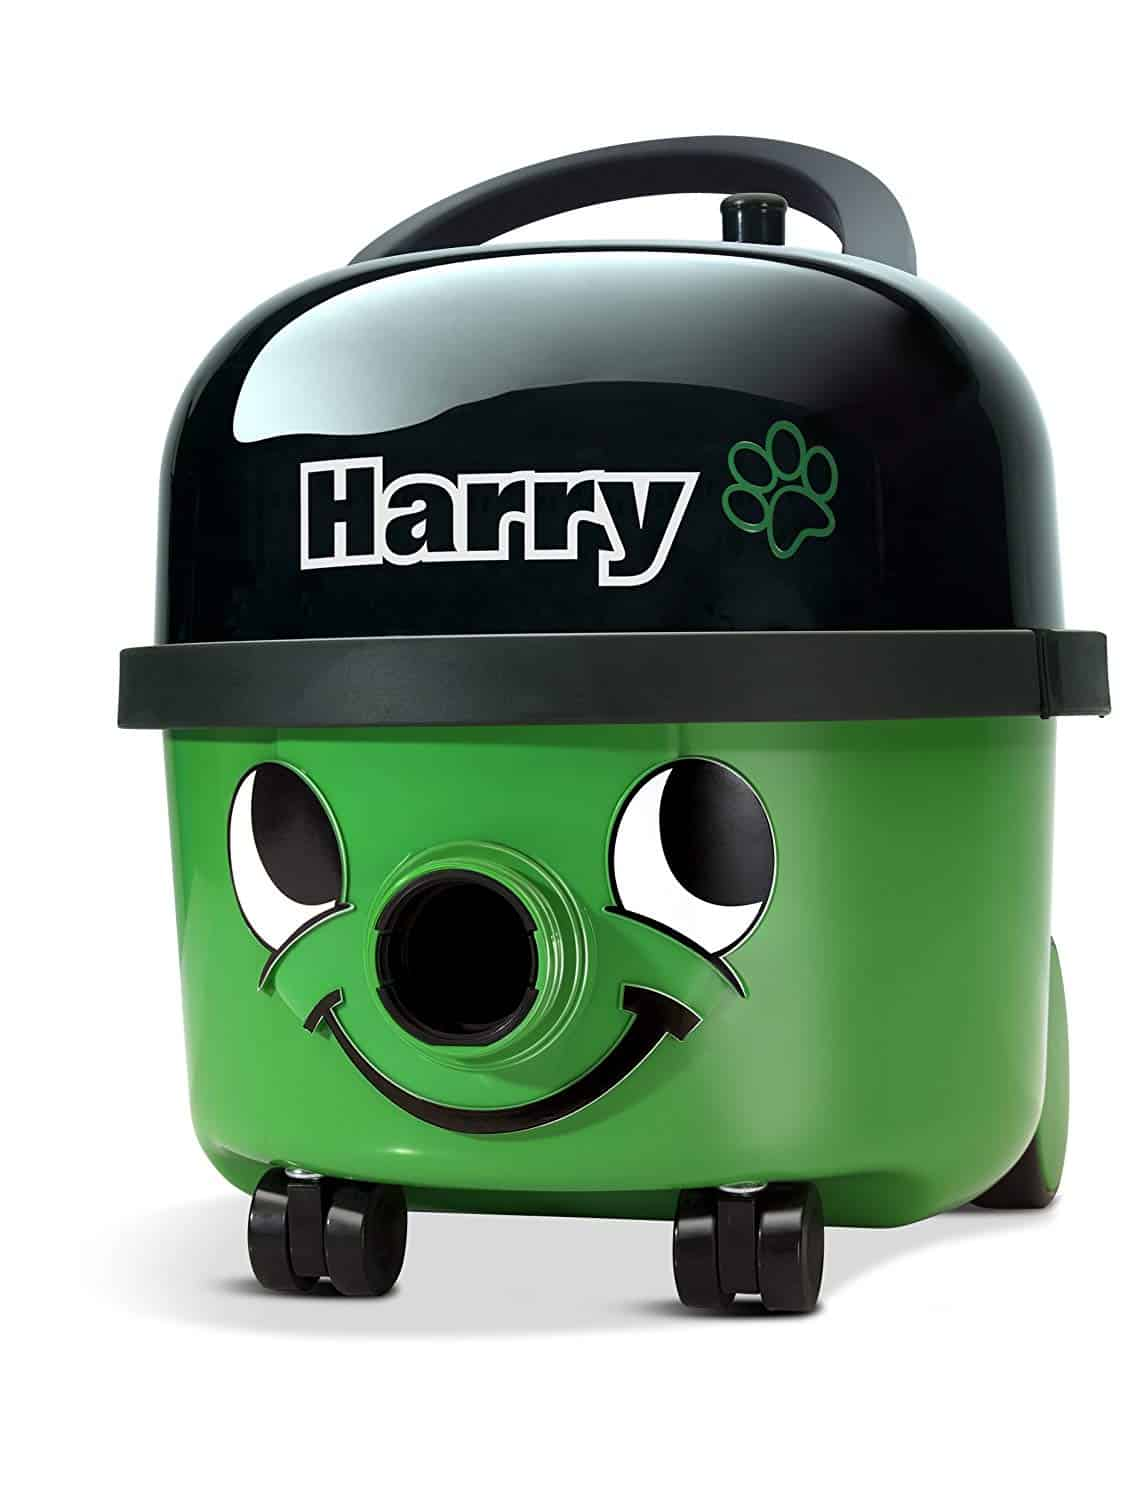 Harry HHR 200-11 Vacuum Cleaner